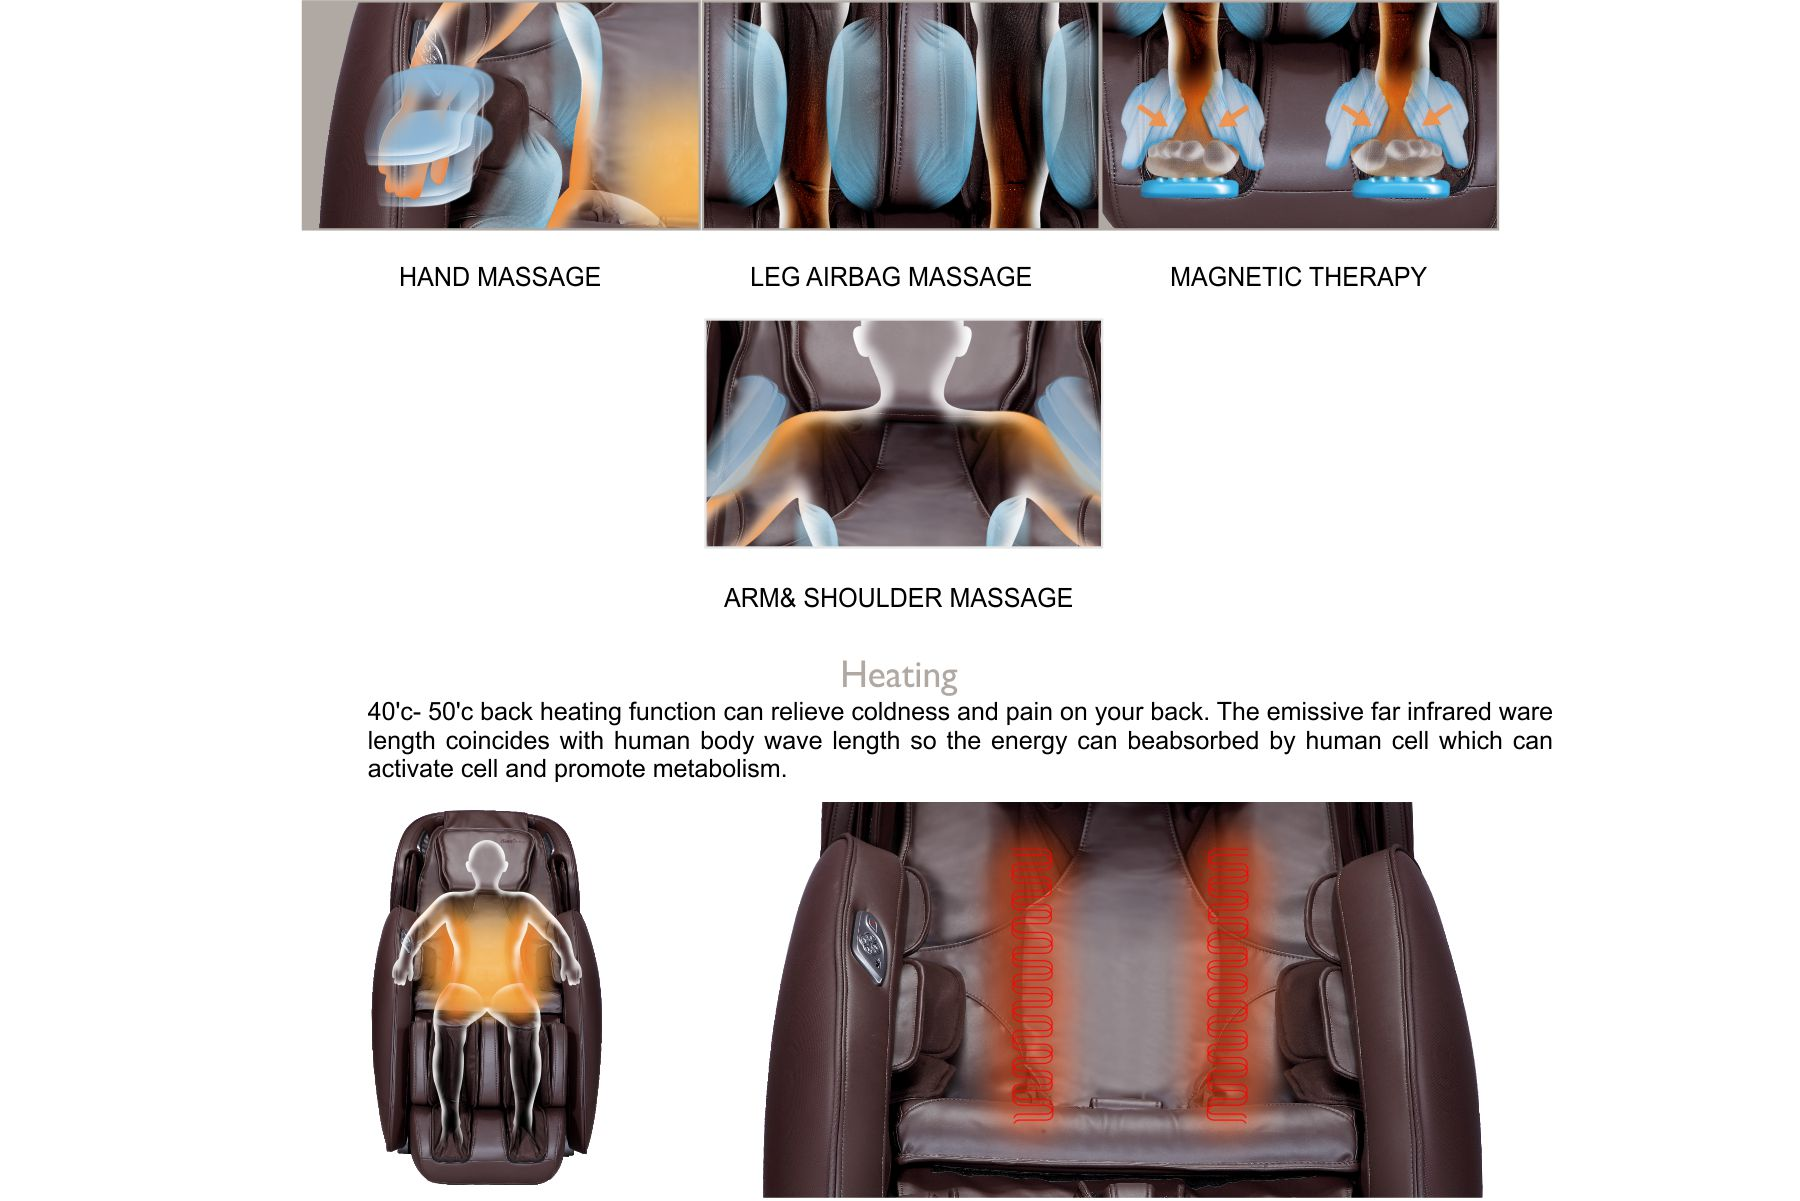 irest massage chair chevy tahoe with captain chairs a389 2